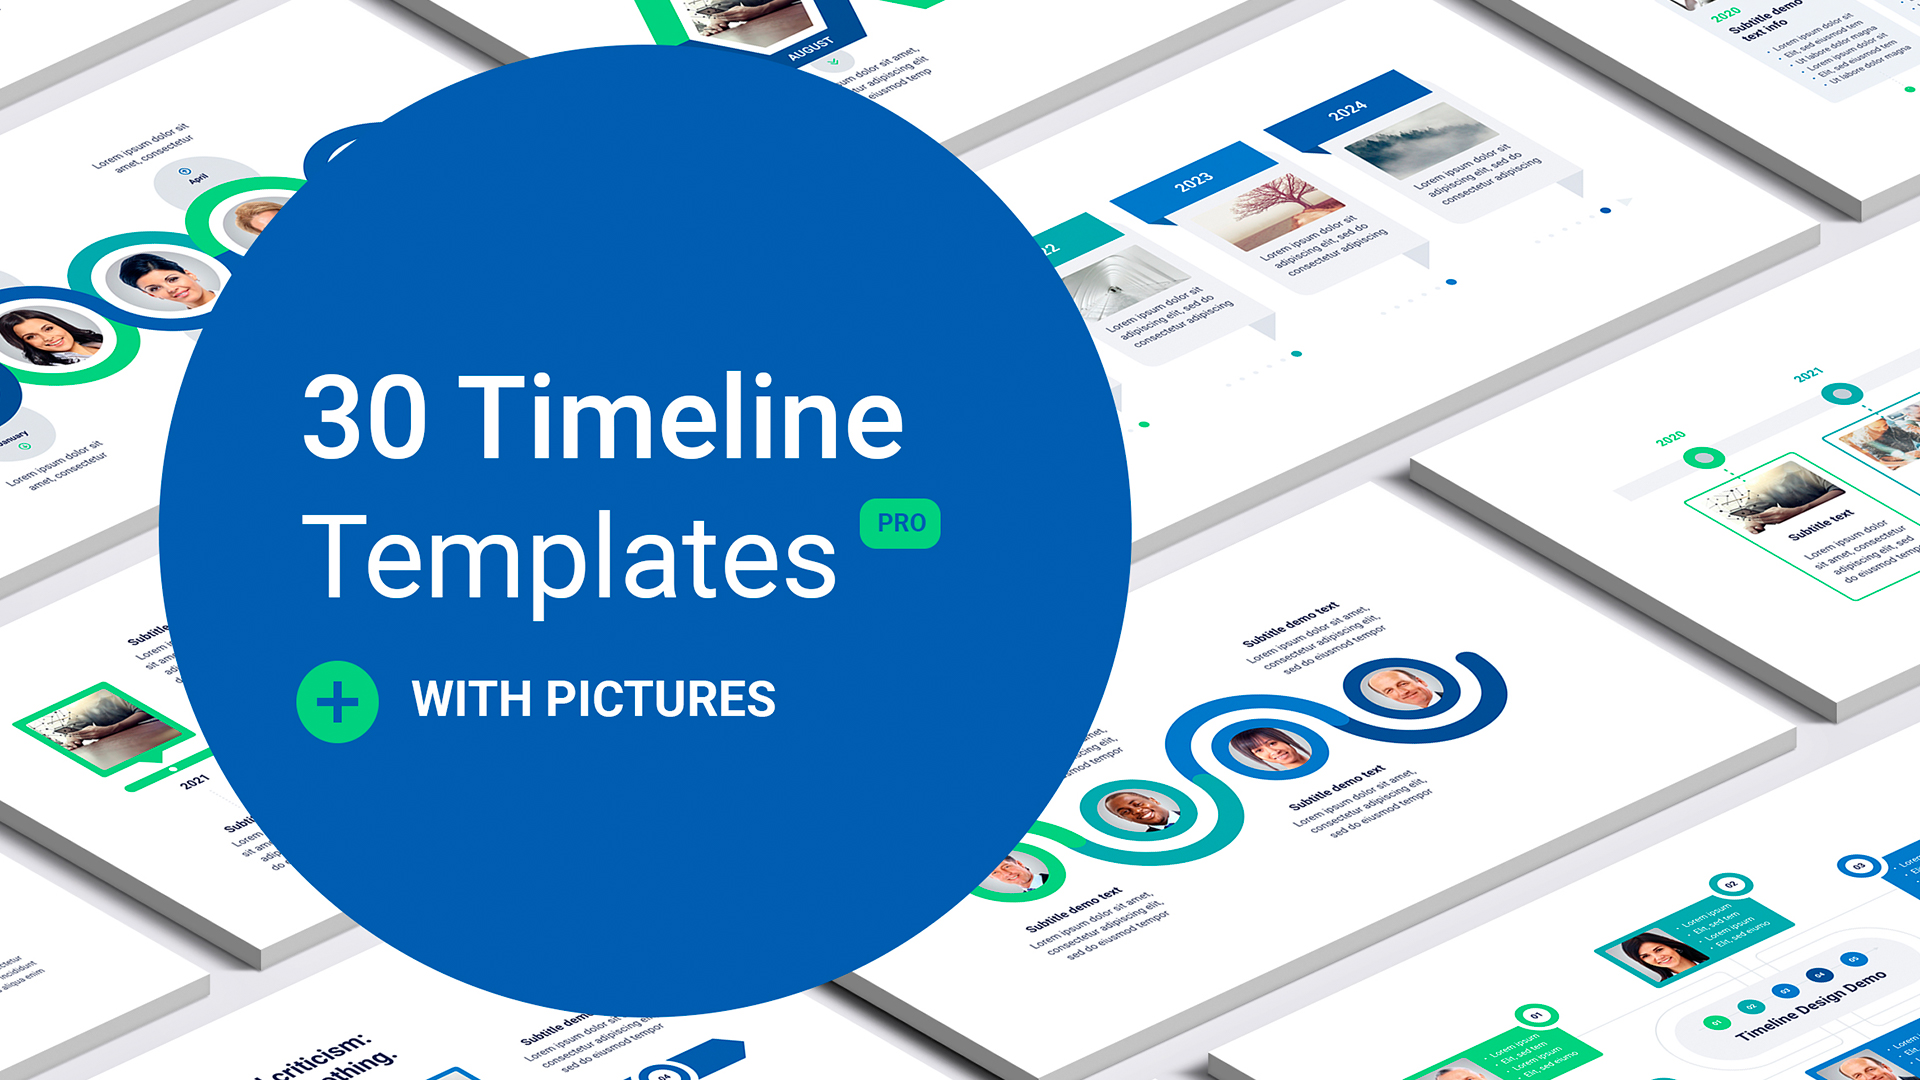 Timeline design for Keynote